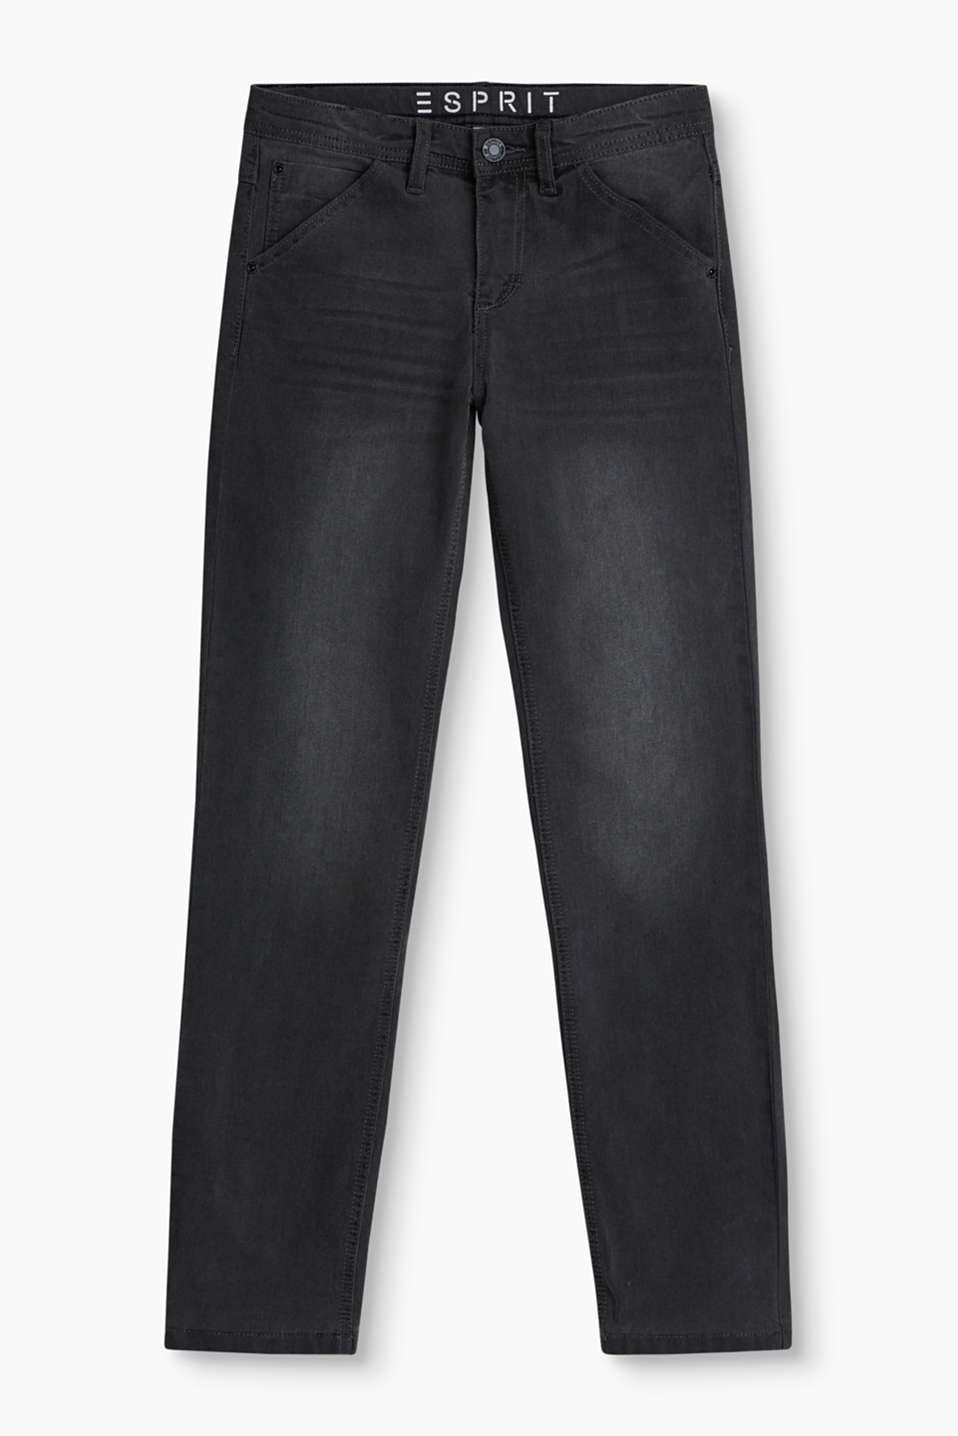 Stretchige 5-Pocket-Jeans in trendig grauer Waschung